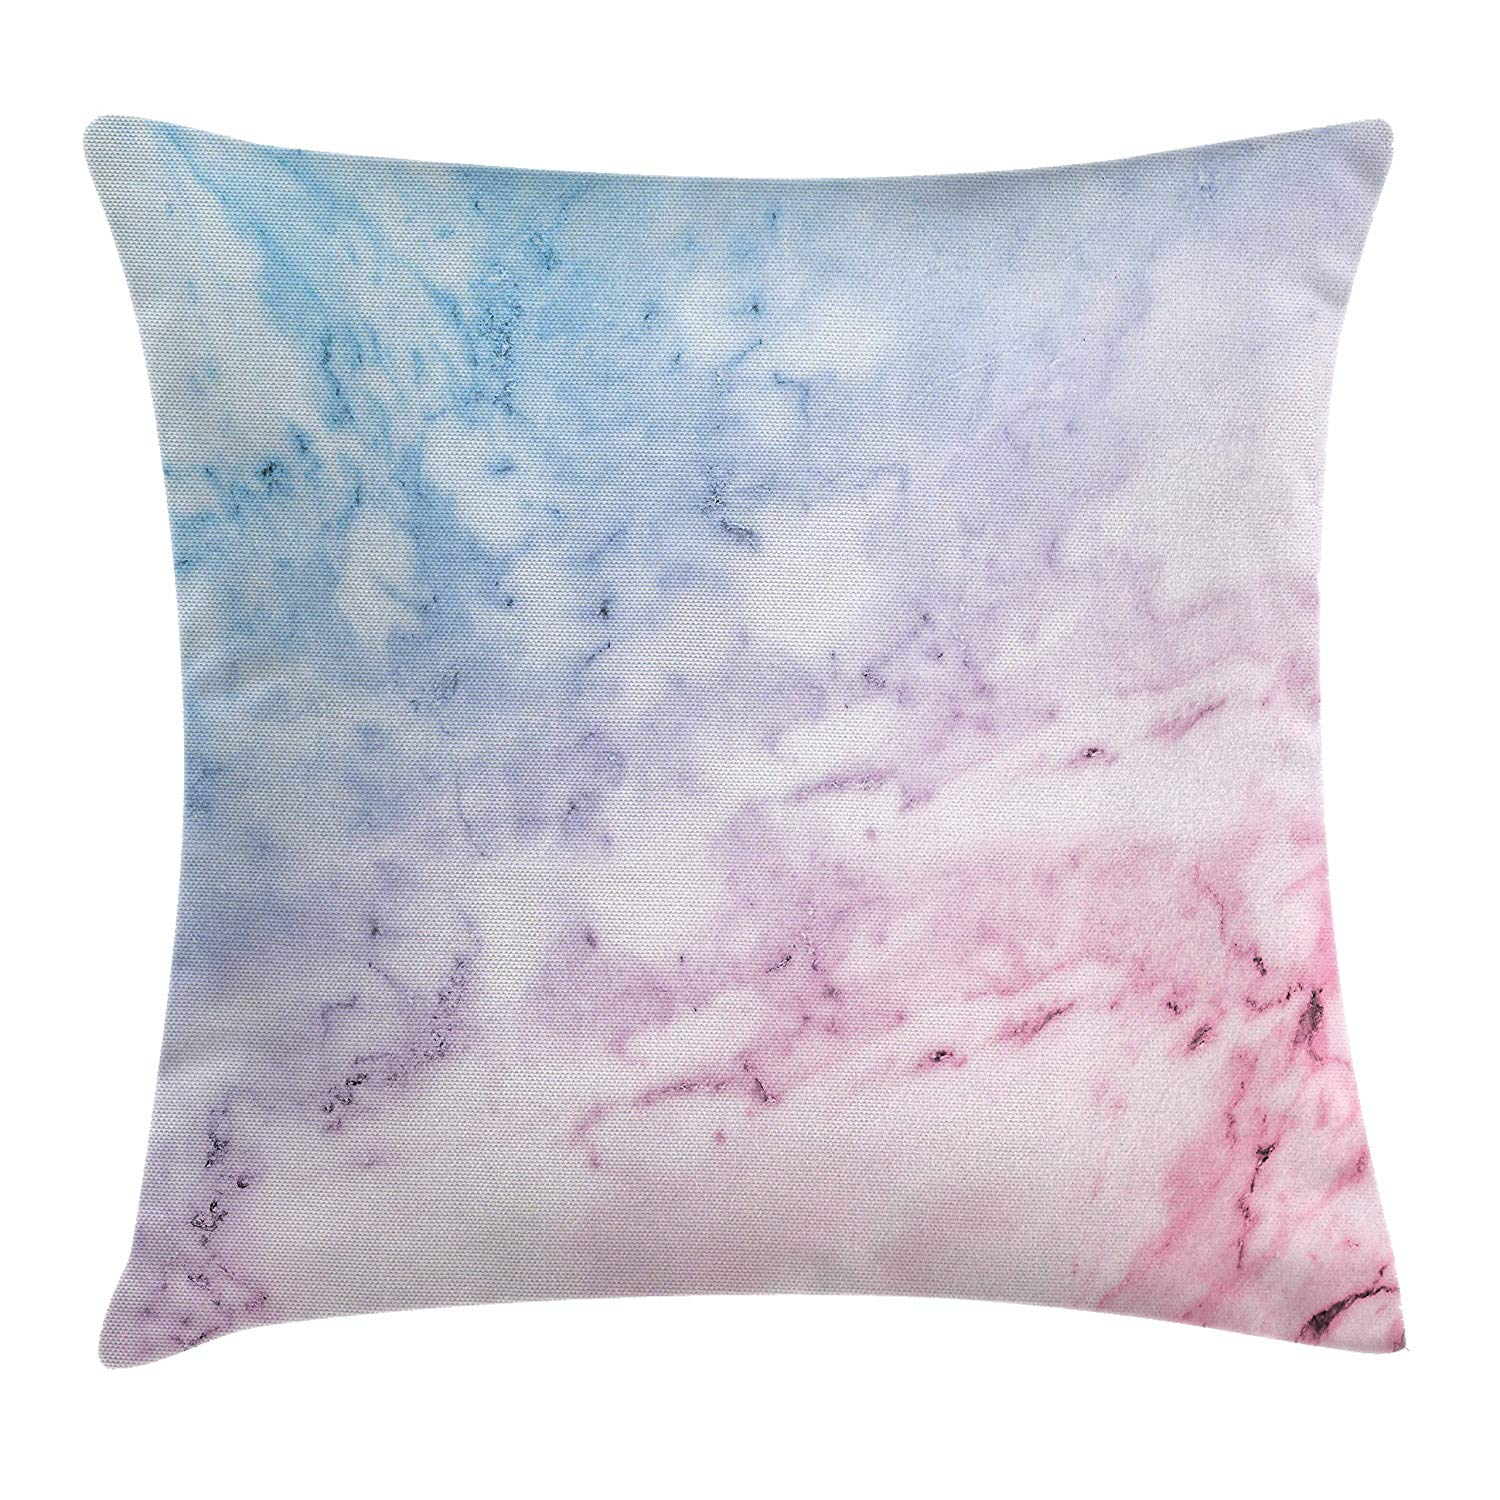 Ambesonne Marble Throw Pillow Cushion Cover, Pastel Toned Cloudy Hazy Crack Lines Stained Antique Shabby Chic Design, Decorative Square Accent Pillow Case, 36 X 36 Inches, Pale Blue Baby Pink